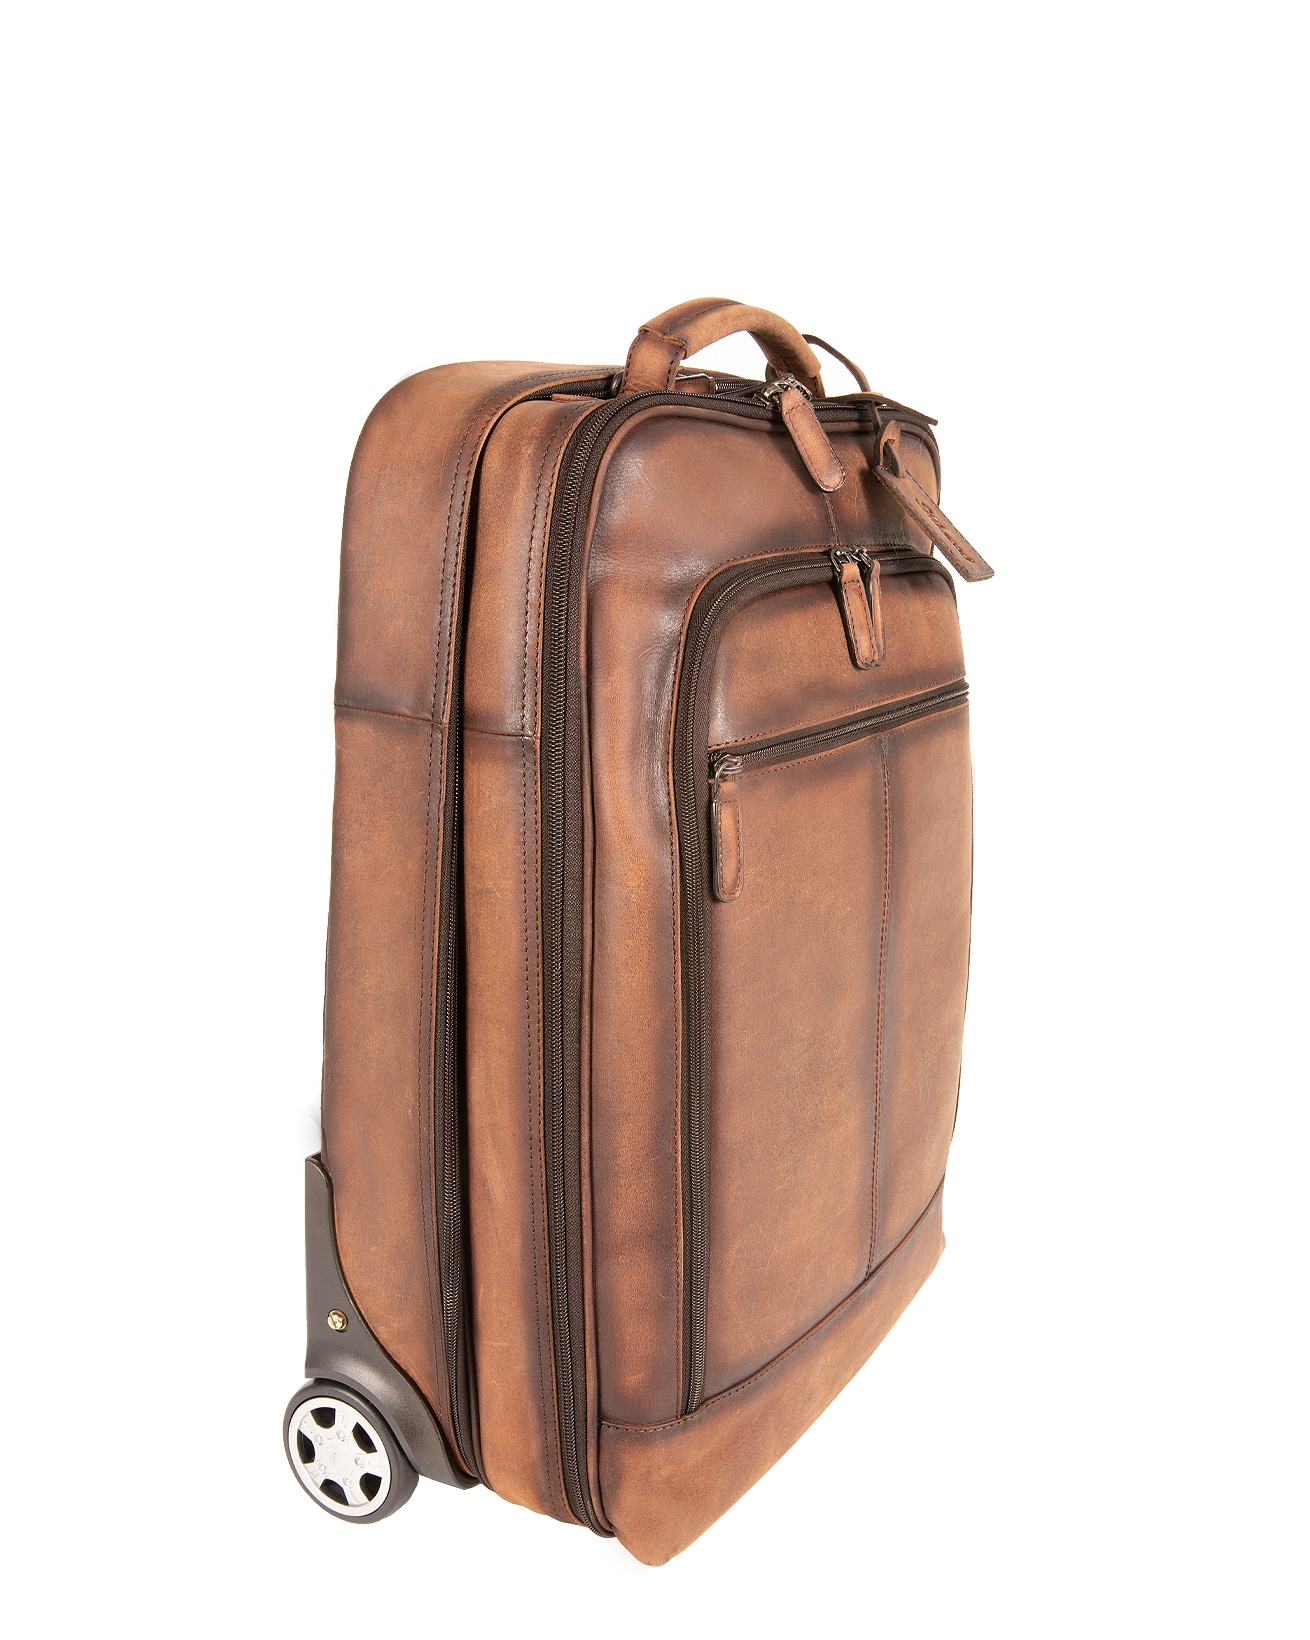 7534-tornado cabin bag-brown-side.jpg